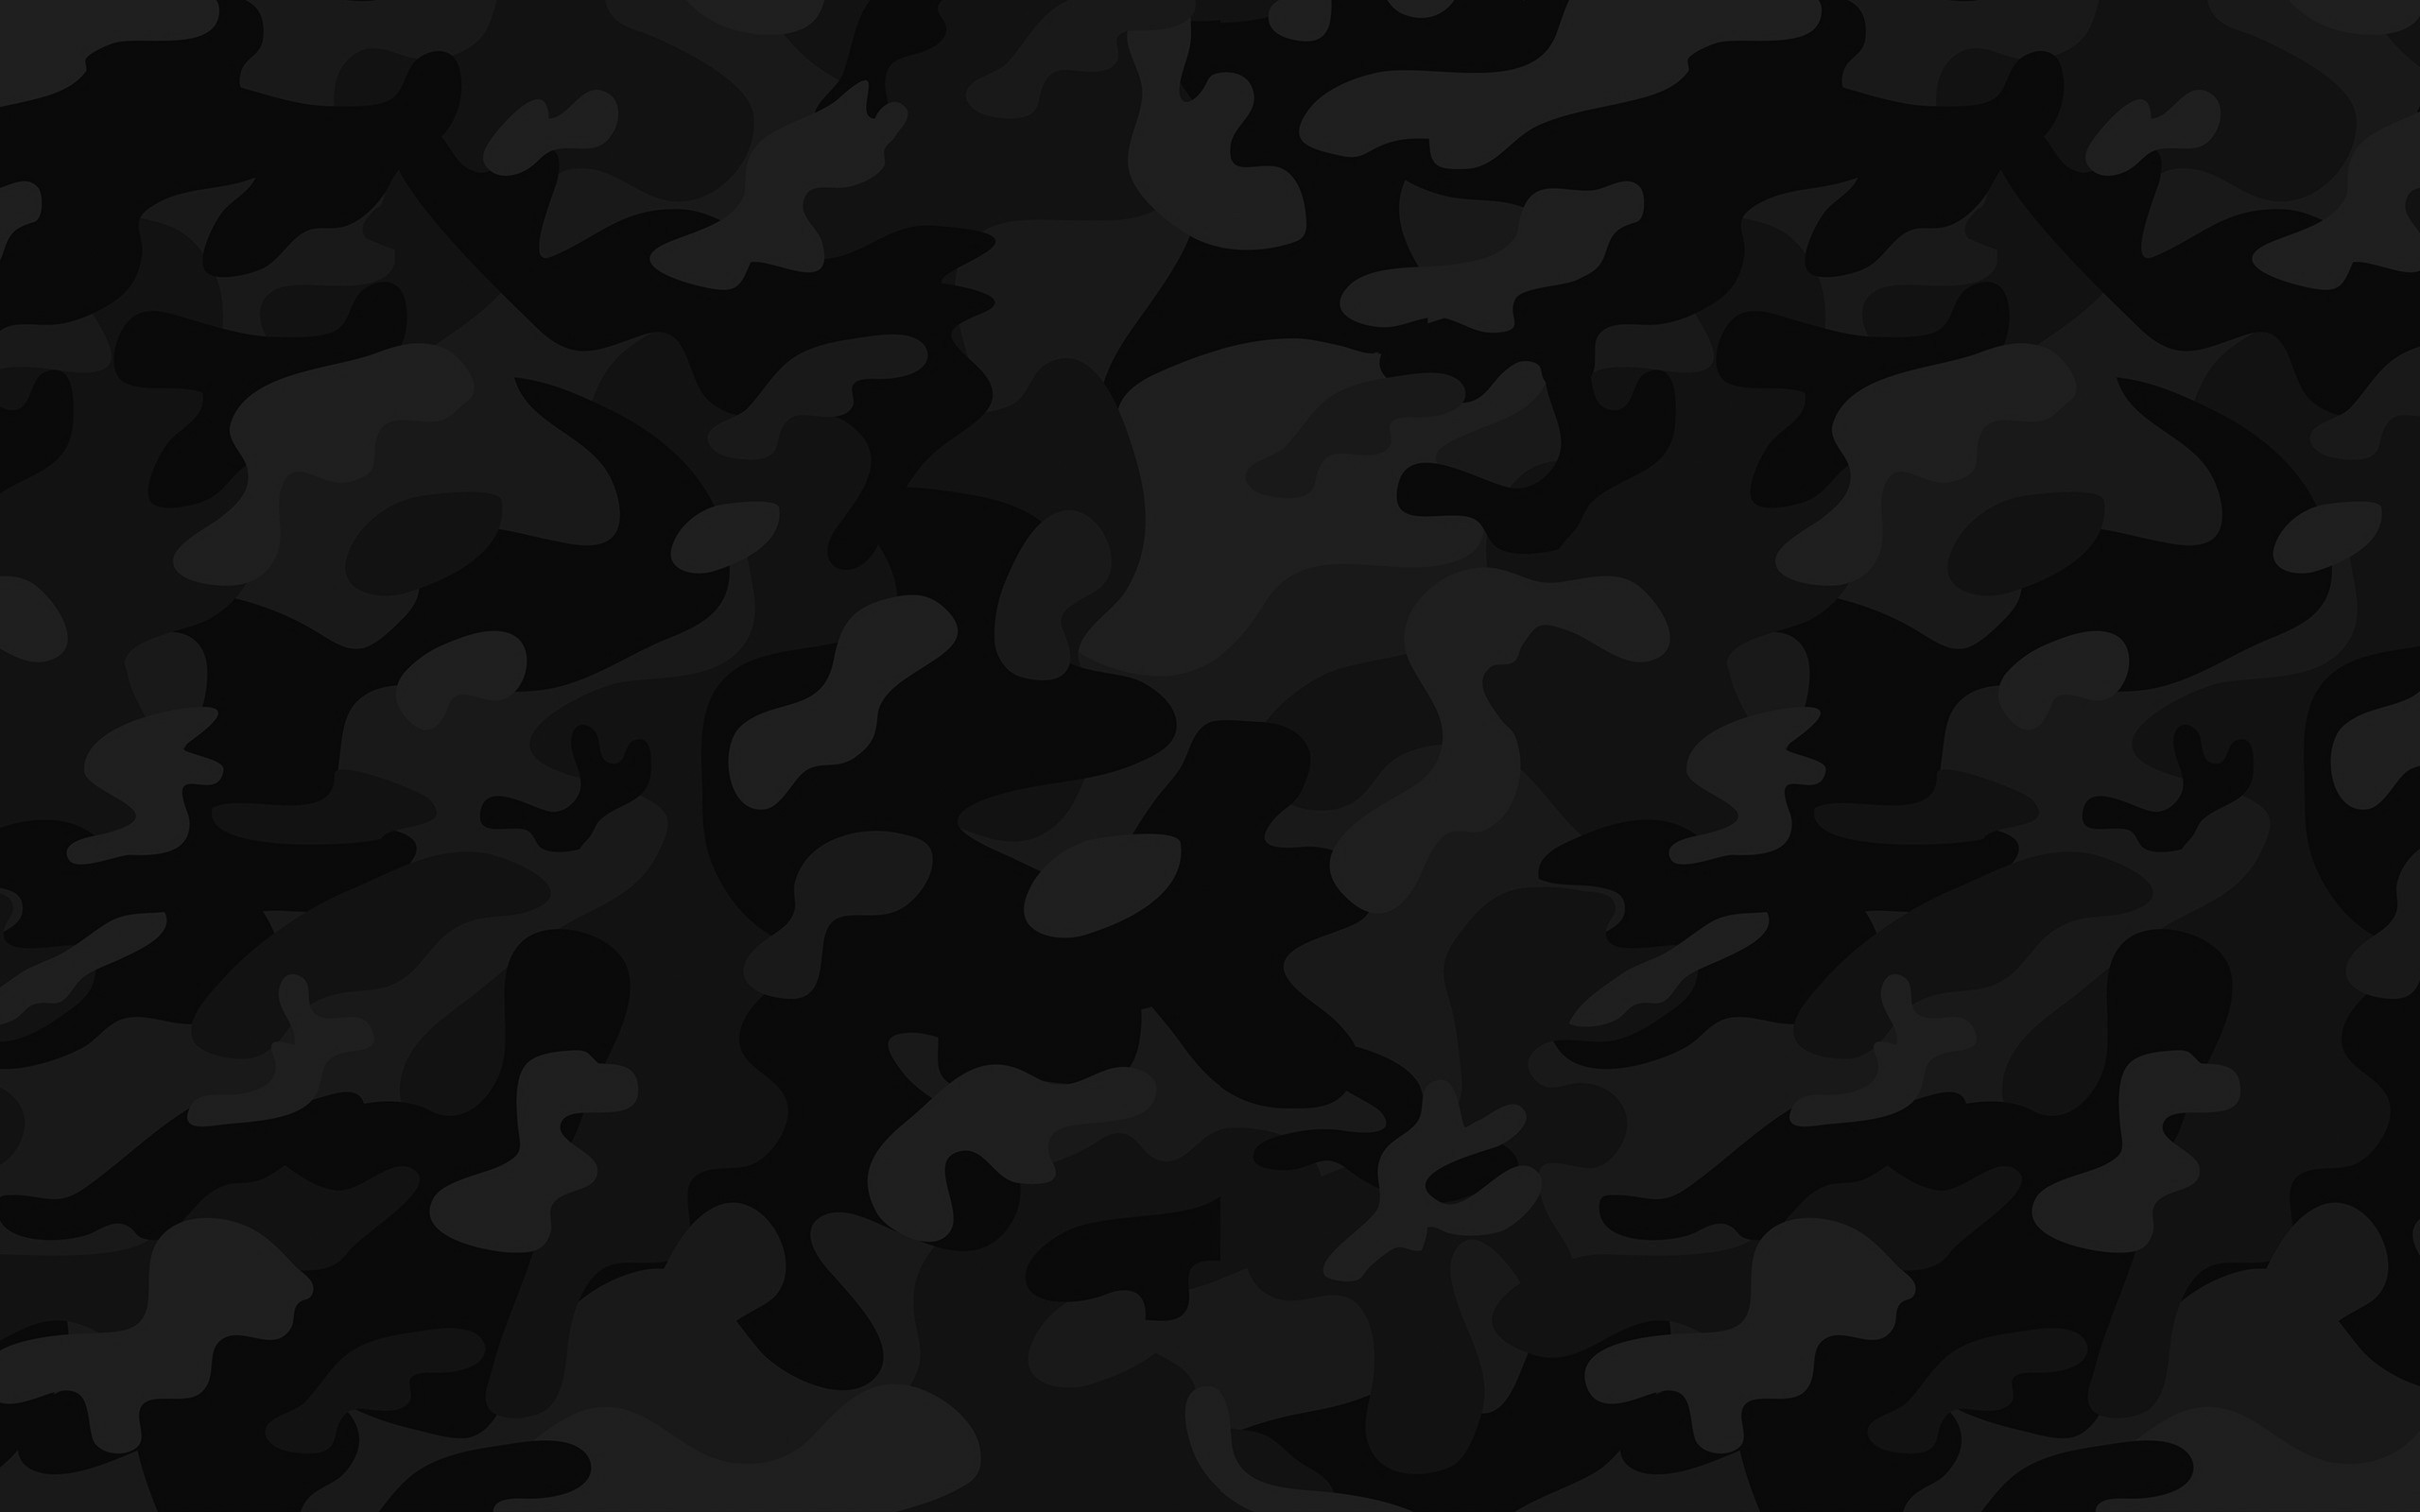 2560x1600 tumblr_static_green-minimalistic-military-camouflage-backgrounds-hd- wallpapers